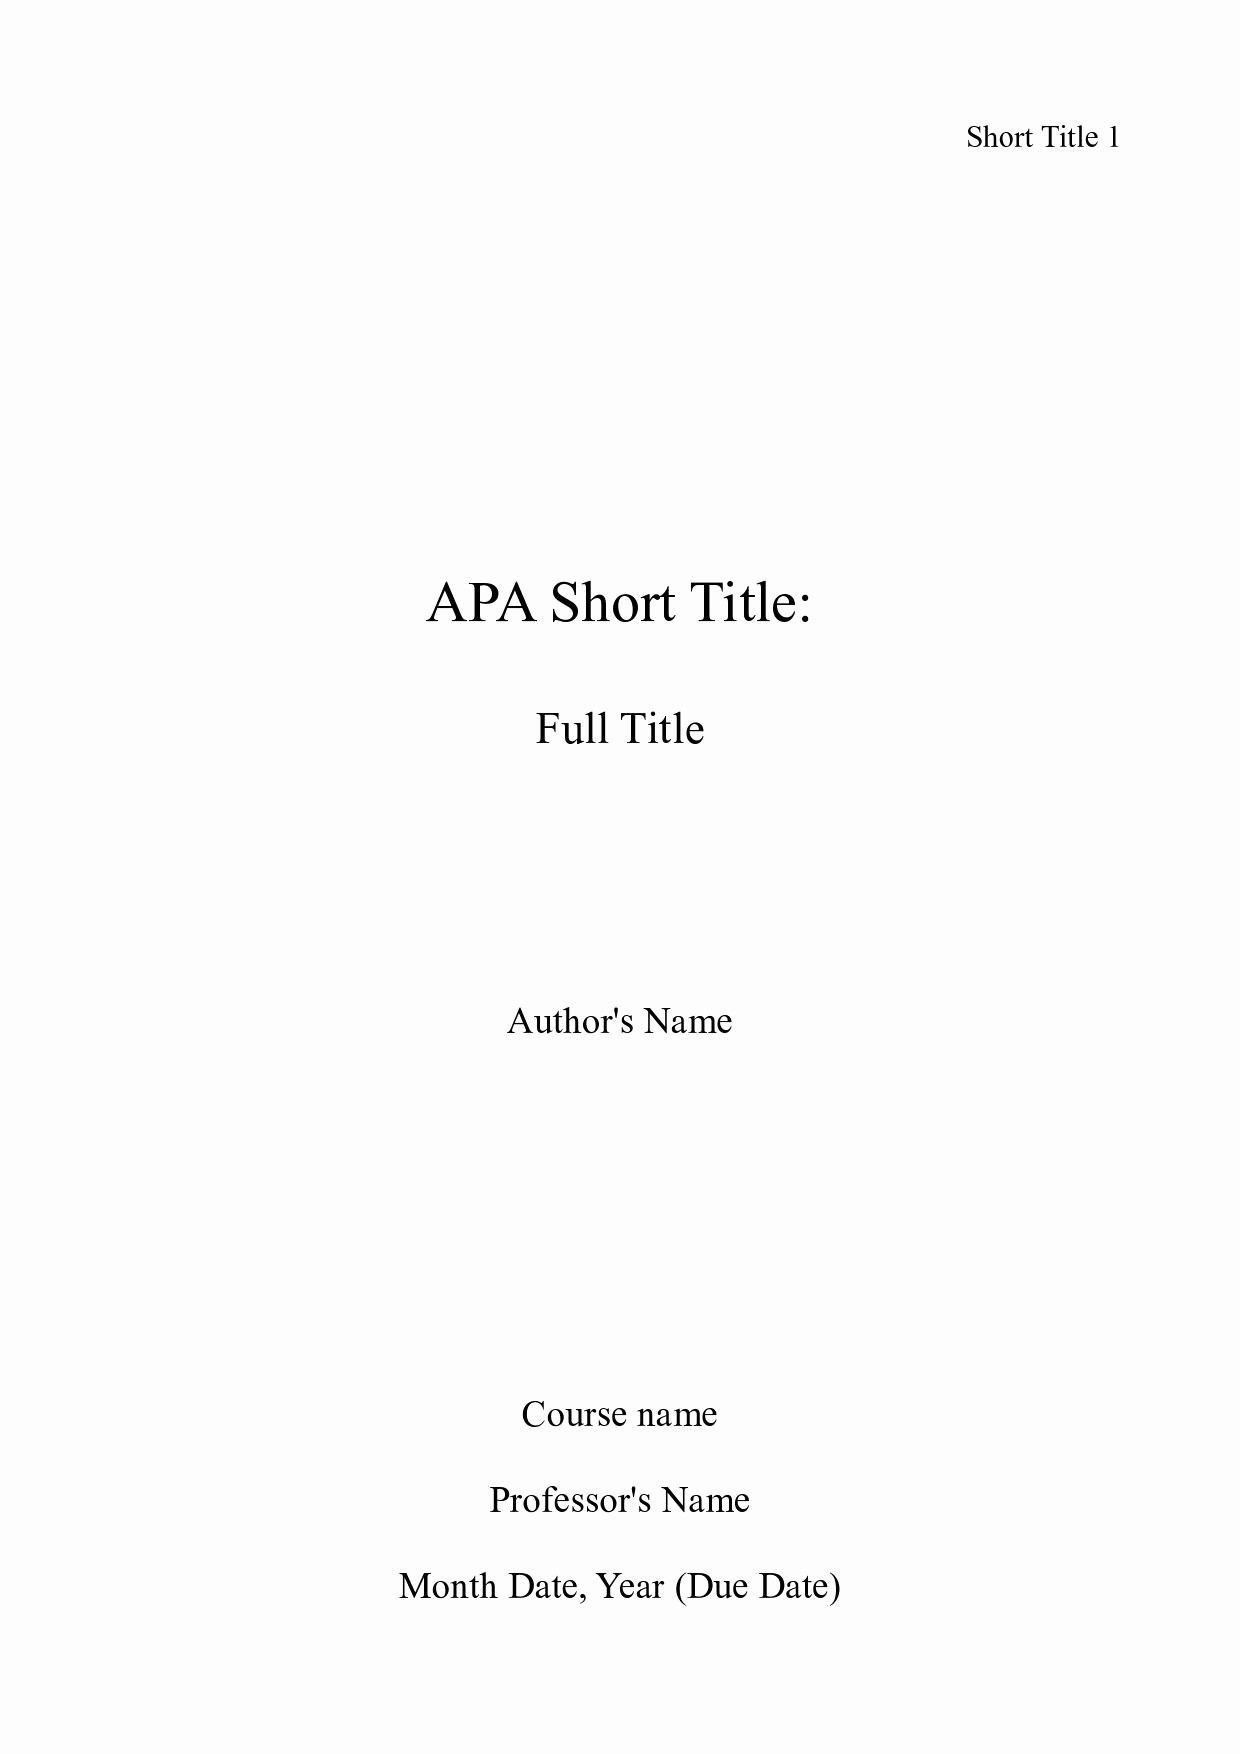 Sample Title Page Apa Style Luxury Picture Of Of An Apa Title Page